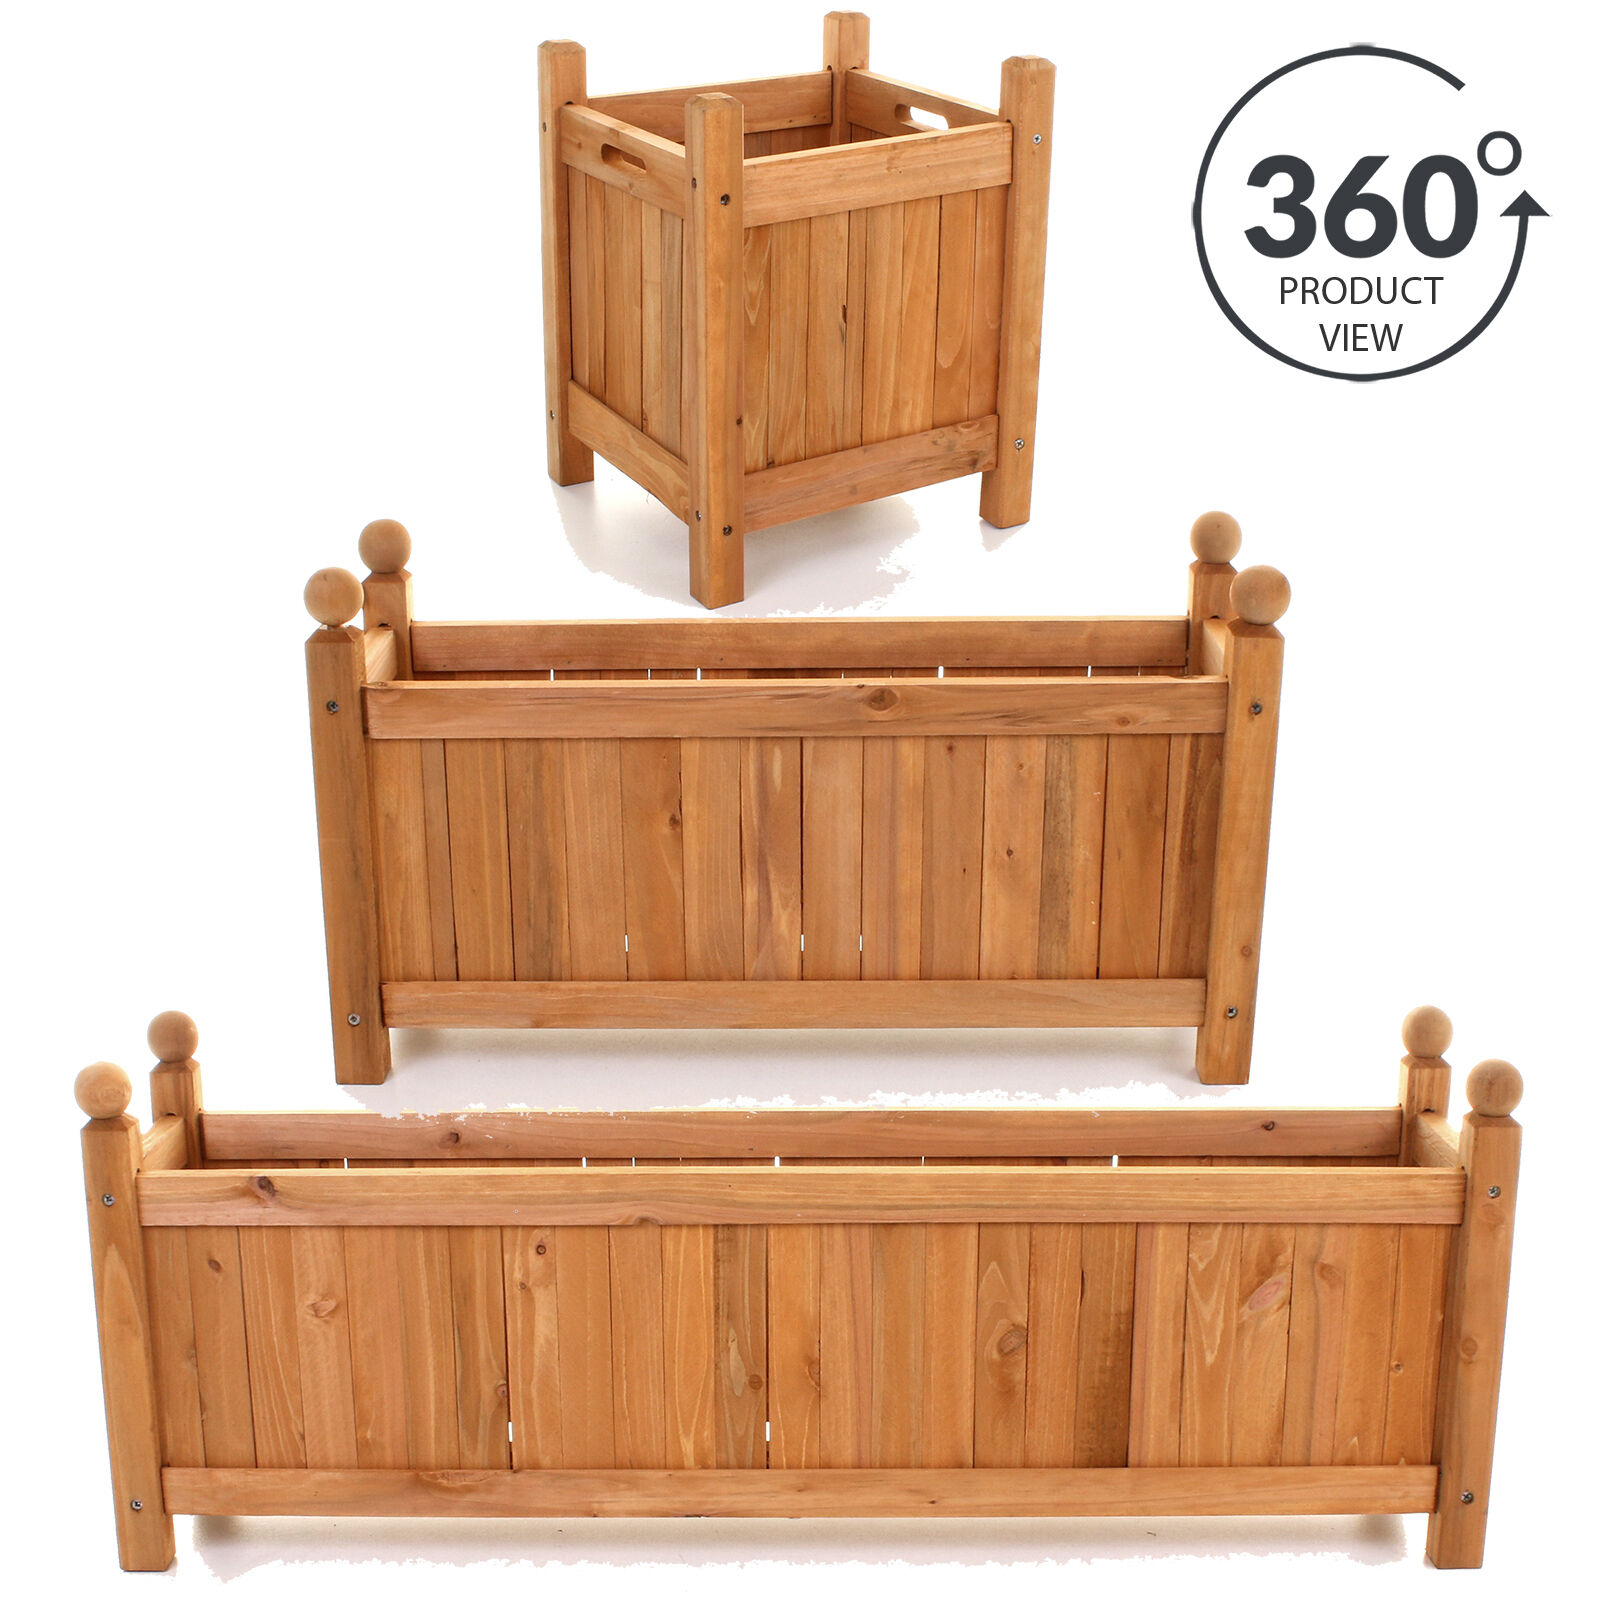 Wooden Garden Planters Outdoor Plants Flowers Pot Square Rectangular Display New 1 Of 1free Shipping